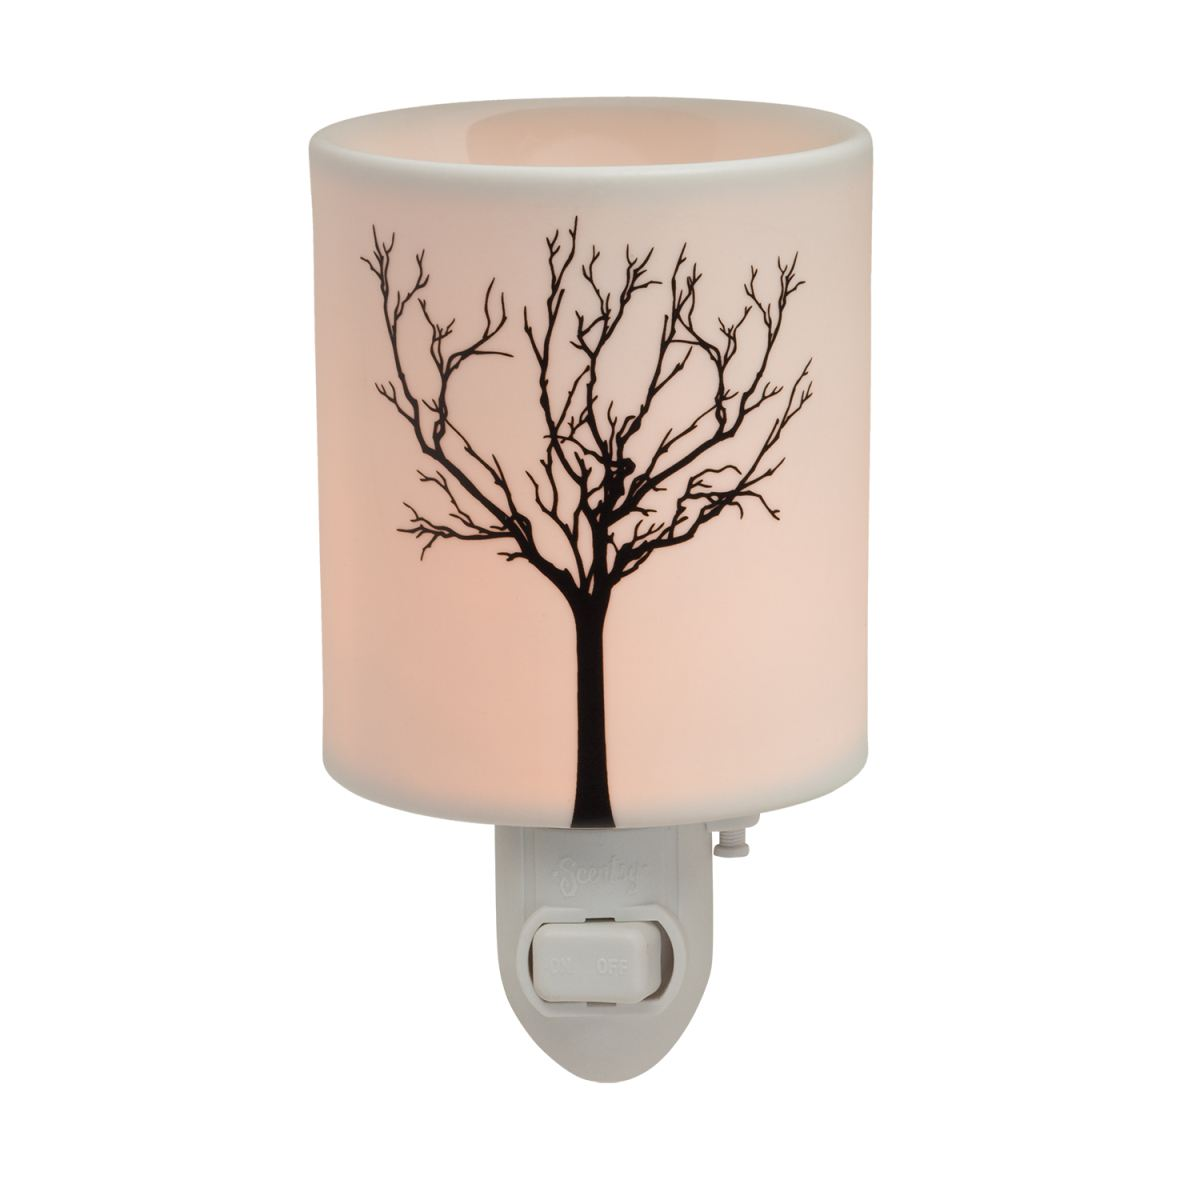 Tilia Nightlight Warmer Scentsy